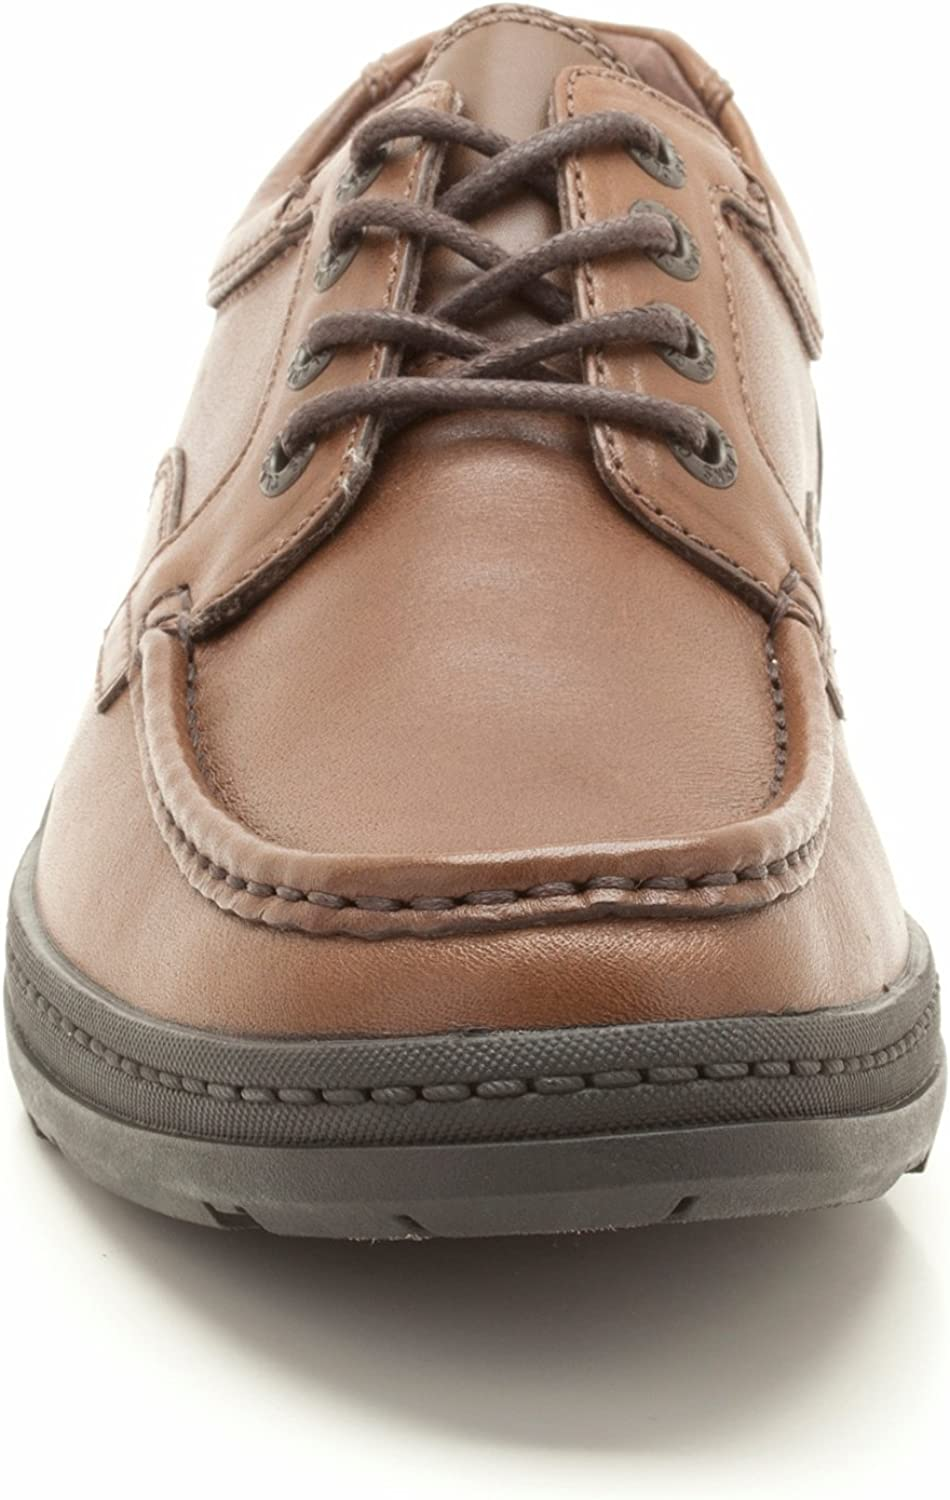 Clarks Line Wall Mens Leather Lace Up Shoes